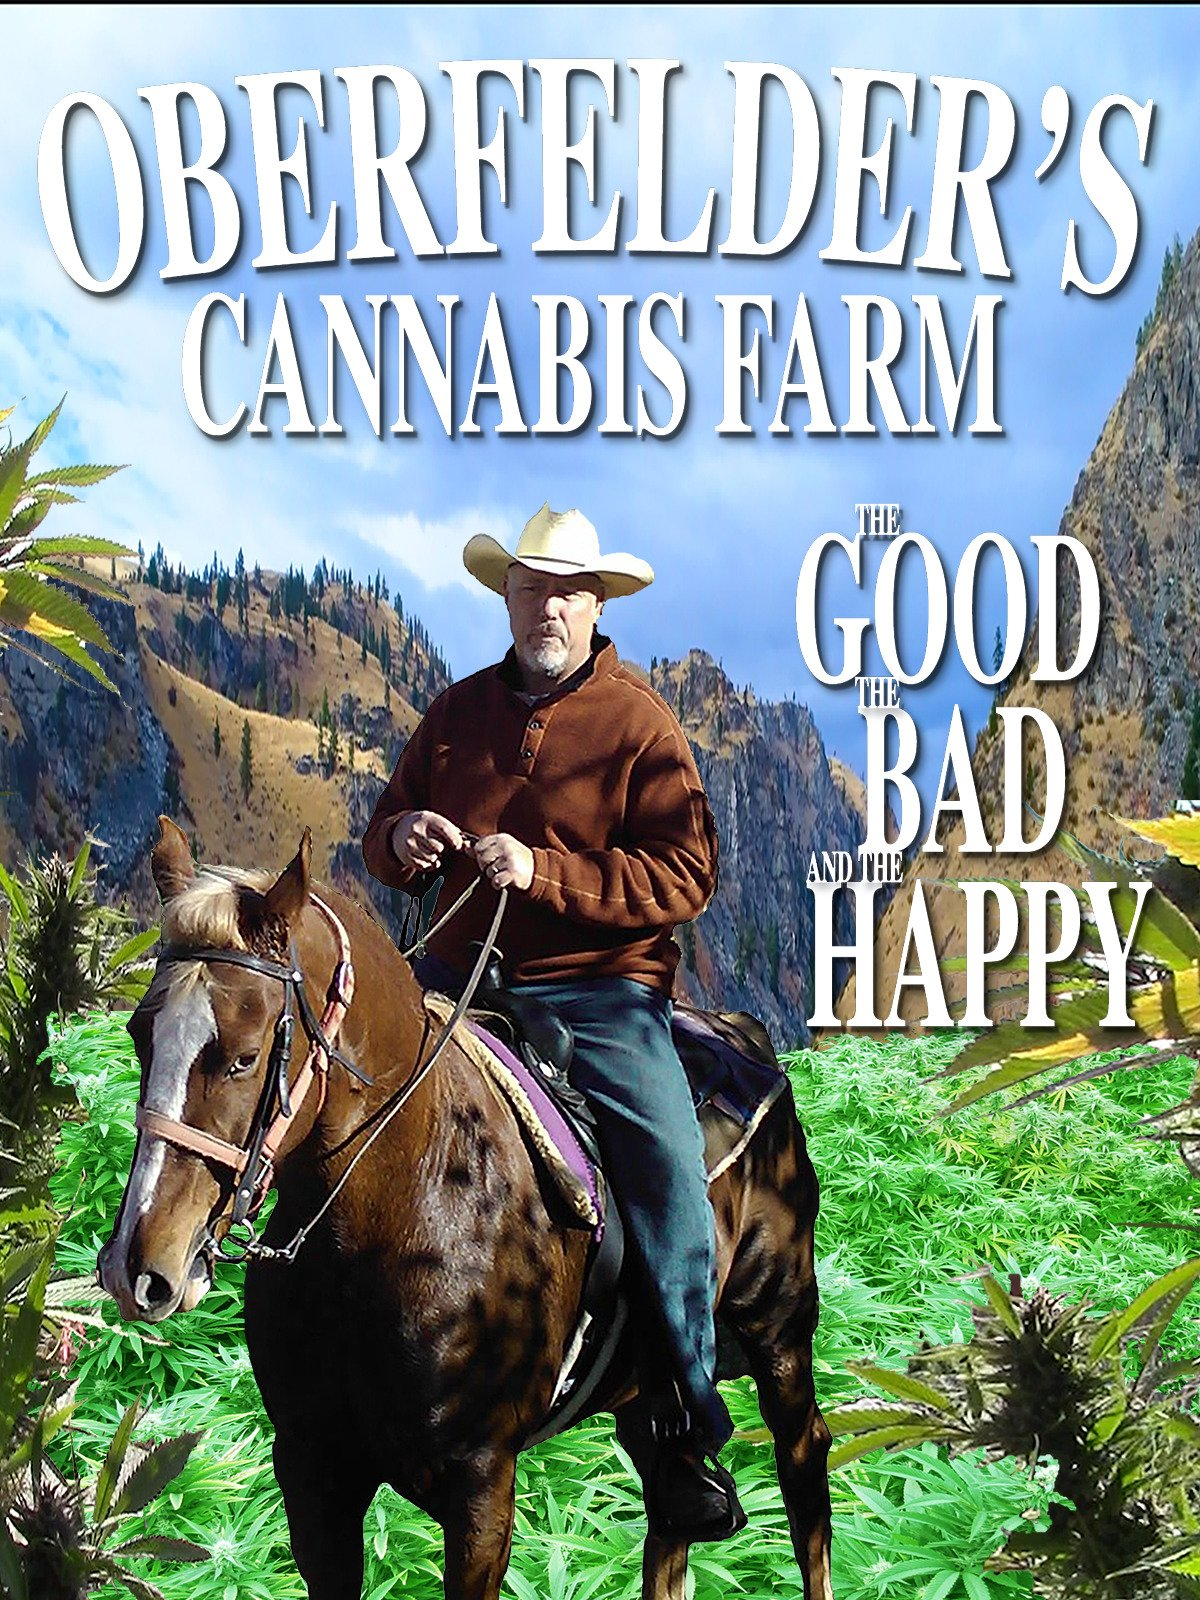 Oberfelders Cannabis Farm, The Good, The Bad, and The Happy